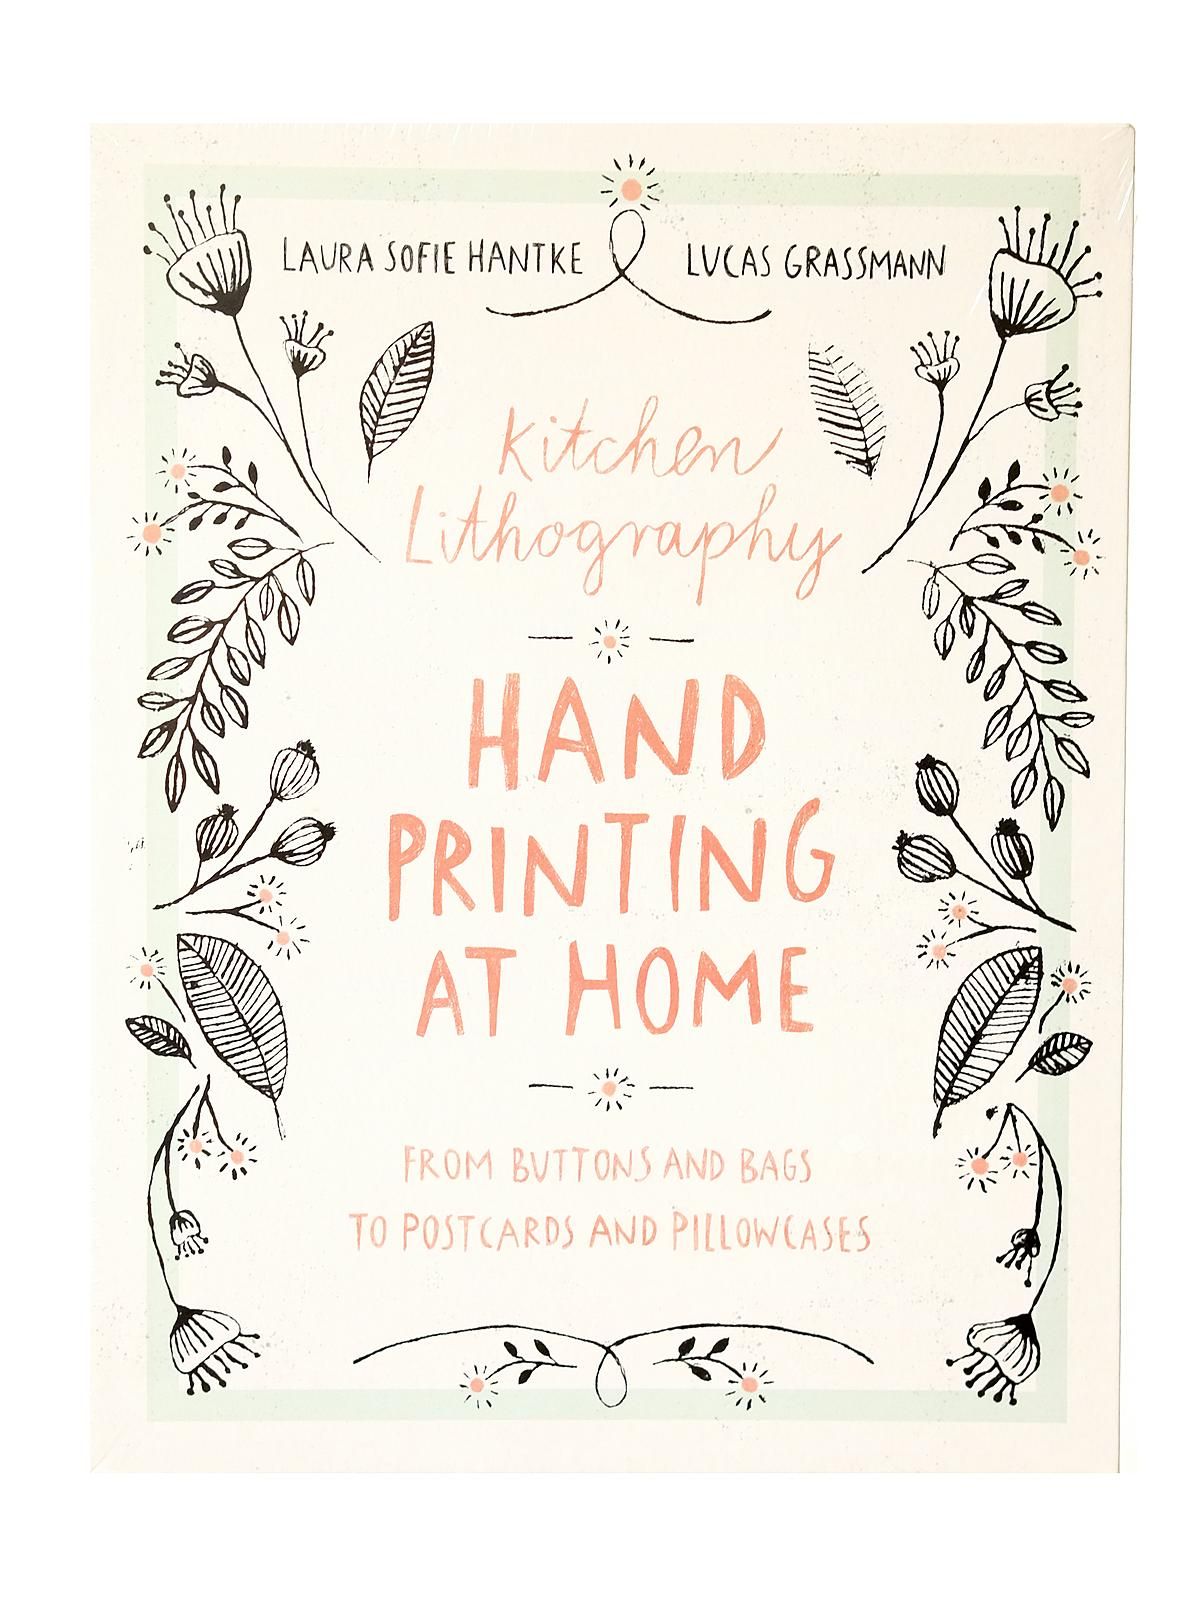 Kitchen Lithography: Hand Printing at Home